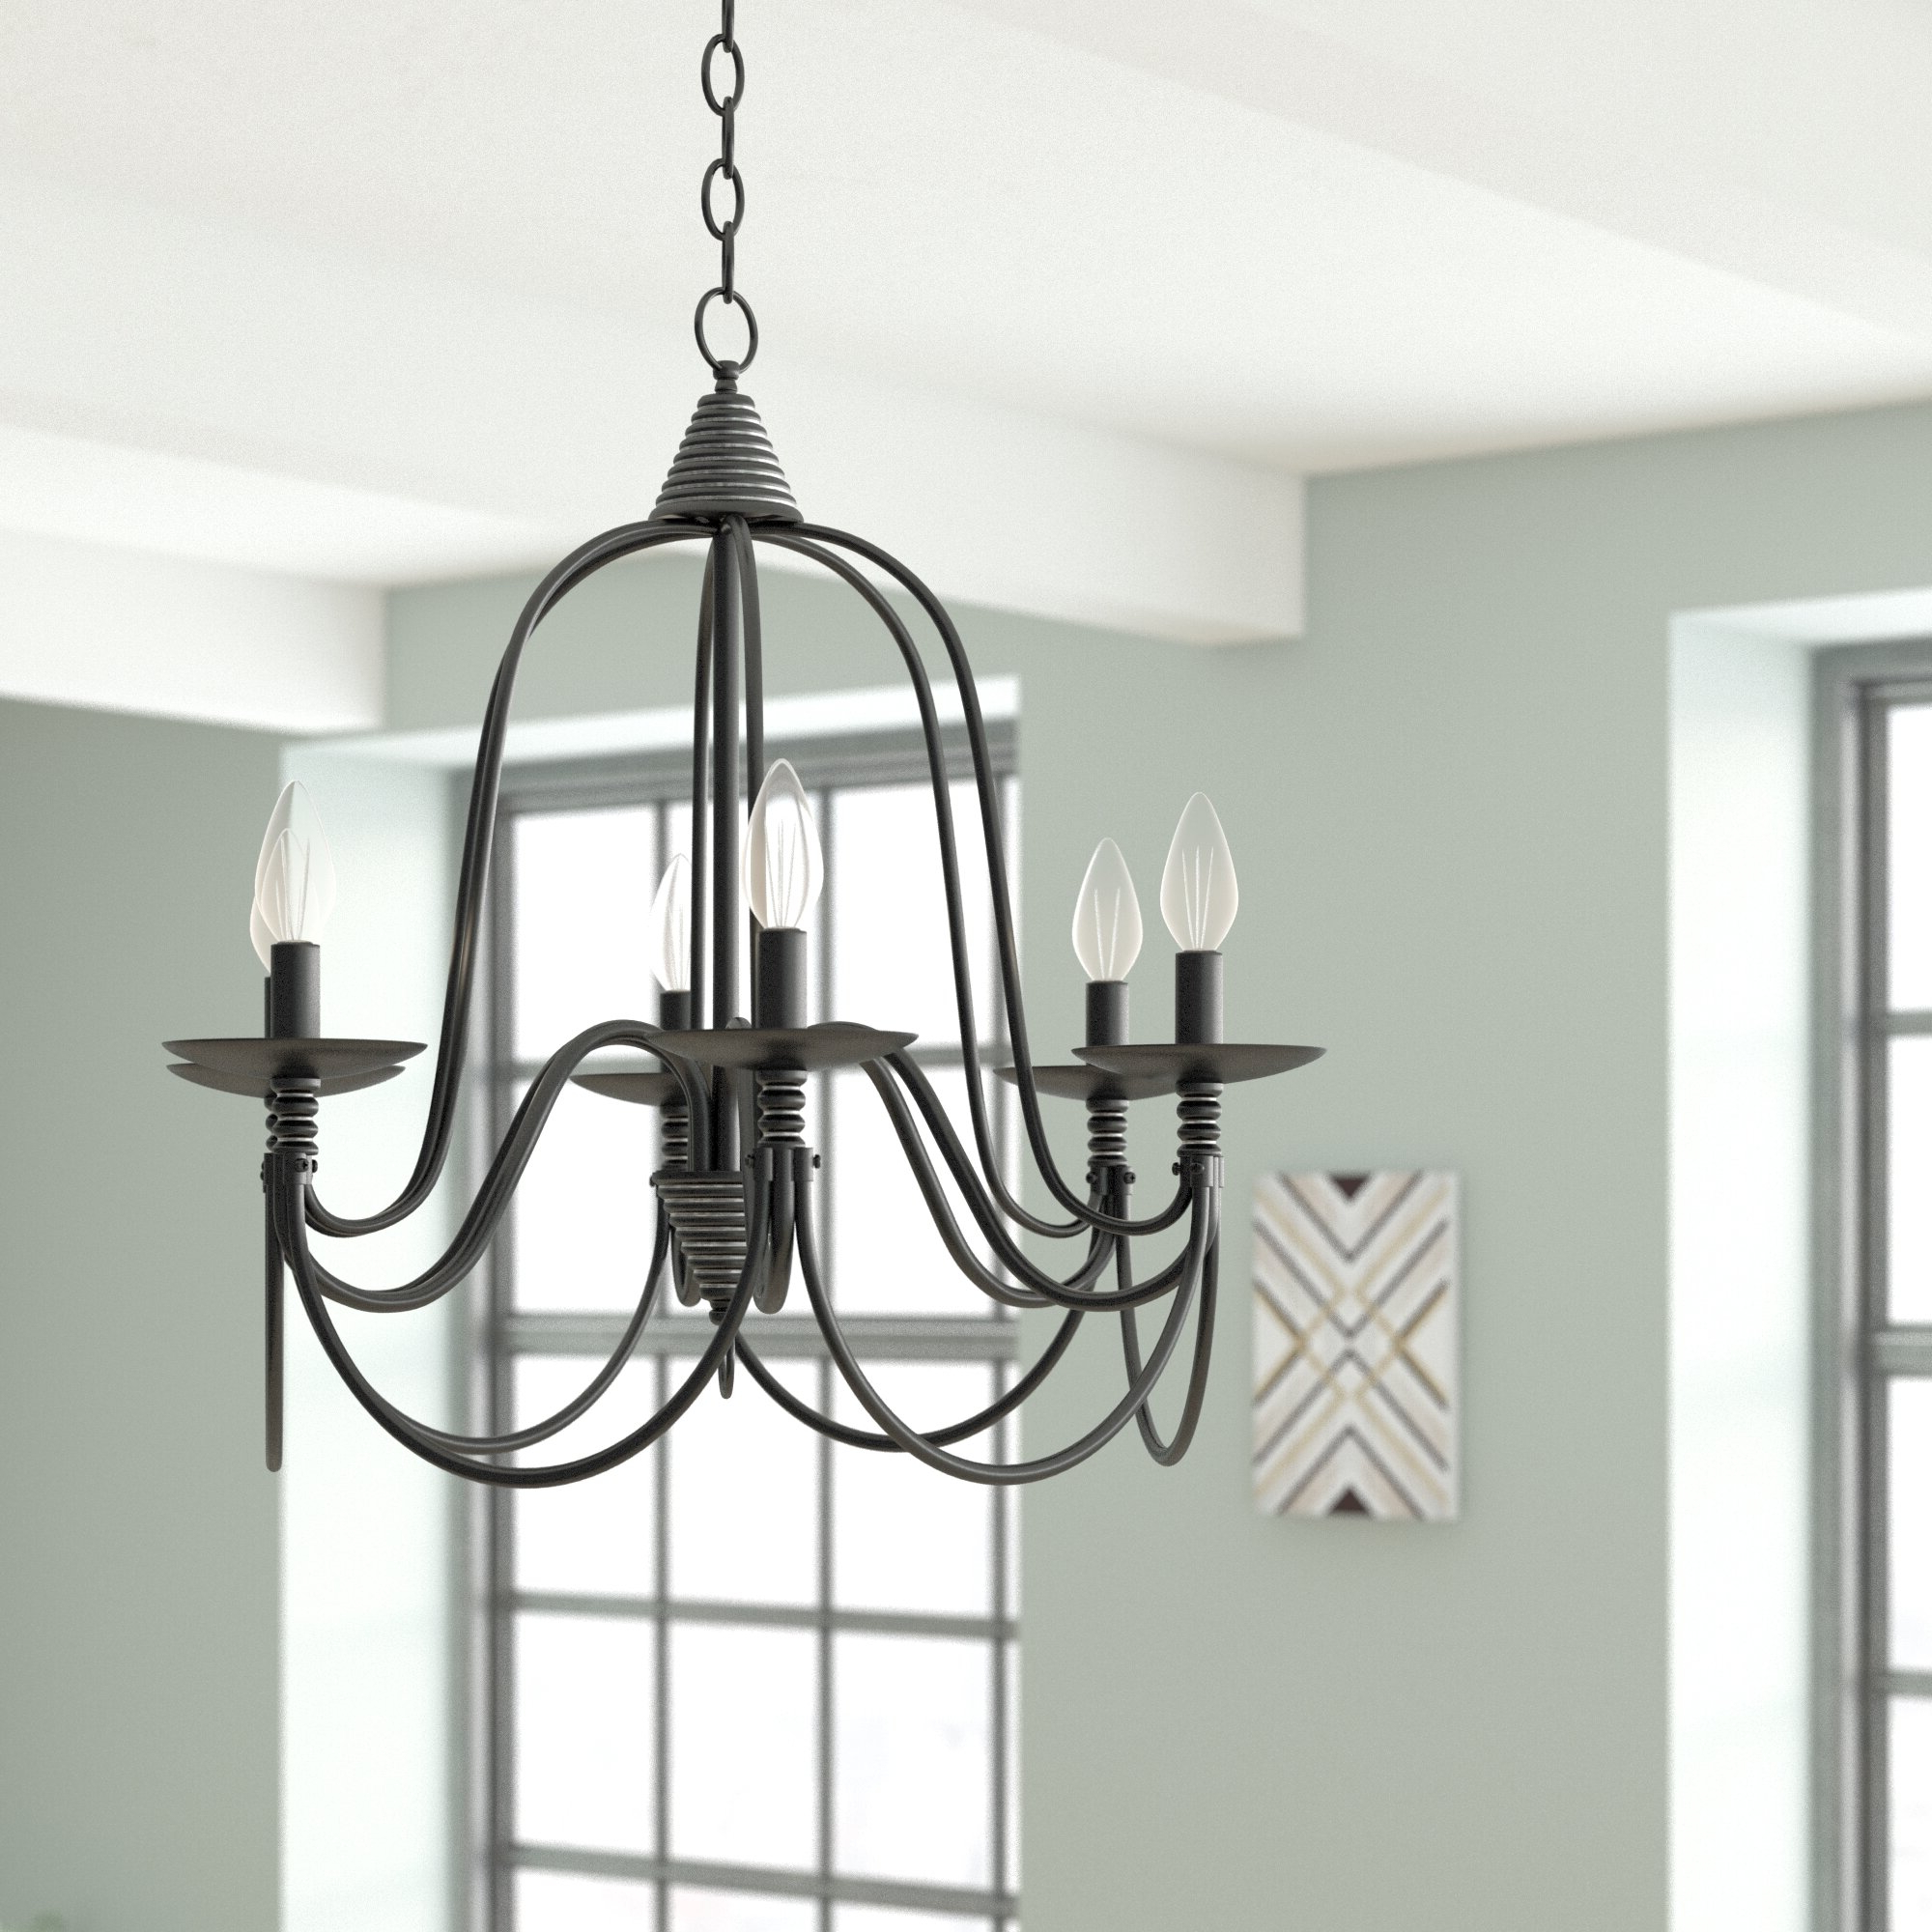 Vahe 6 Light Chandelier Intended For Most Recent Watford 6 Light Candle Style Chandeliers (View 12 of 20)